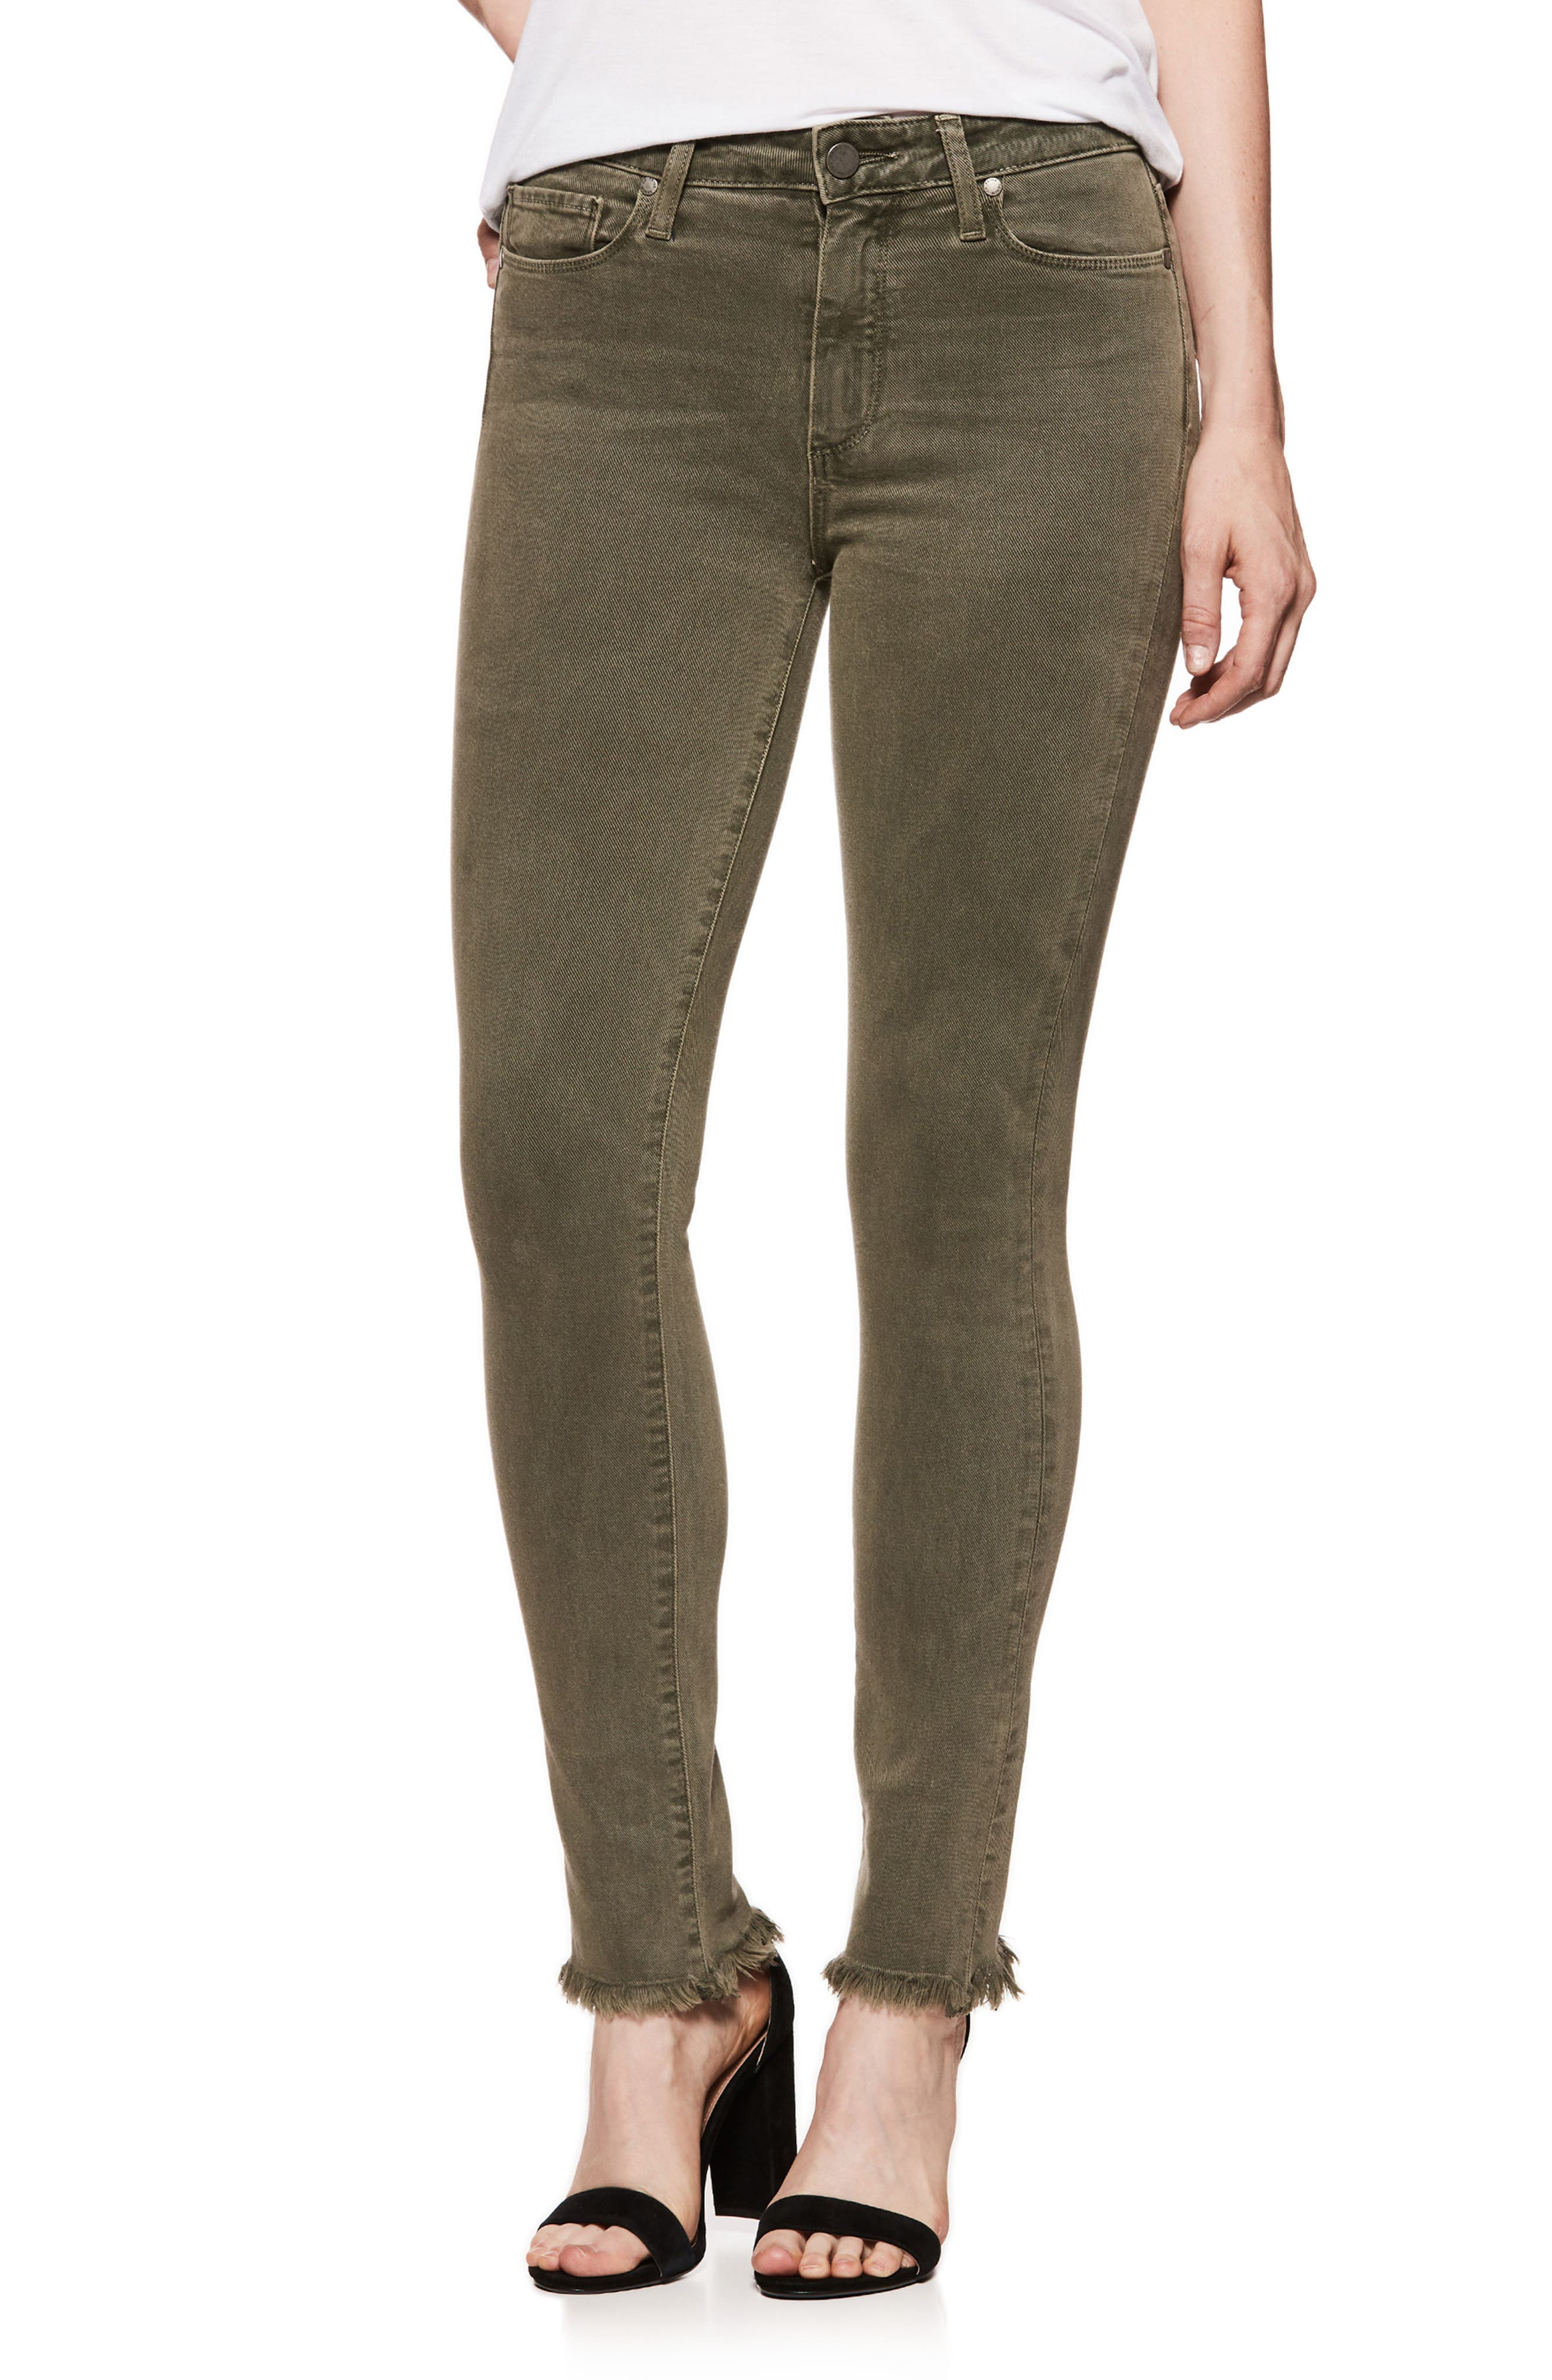 Hoxton High Waist Ankle Skinny Jeans,                             Main thumbnail 1, color,                             Vintage Green